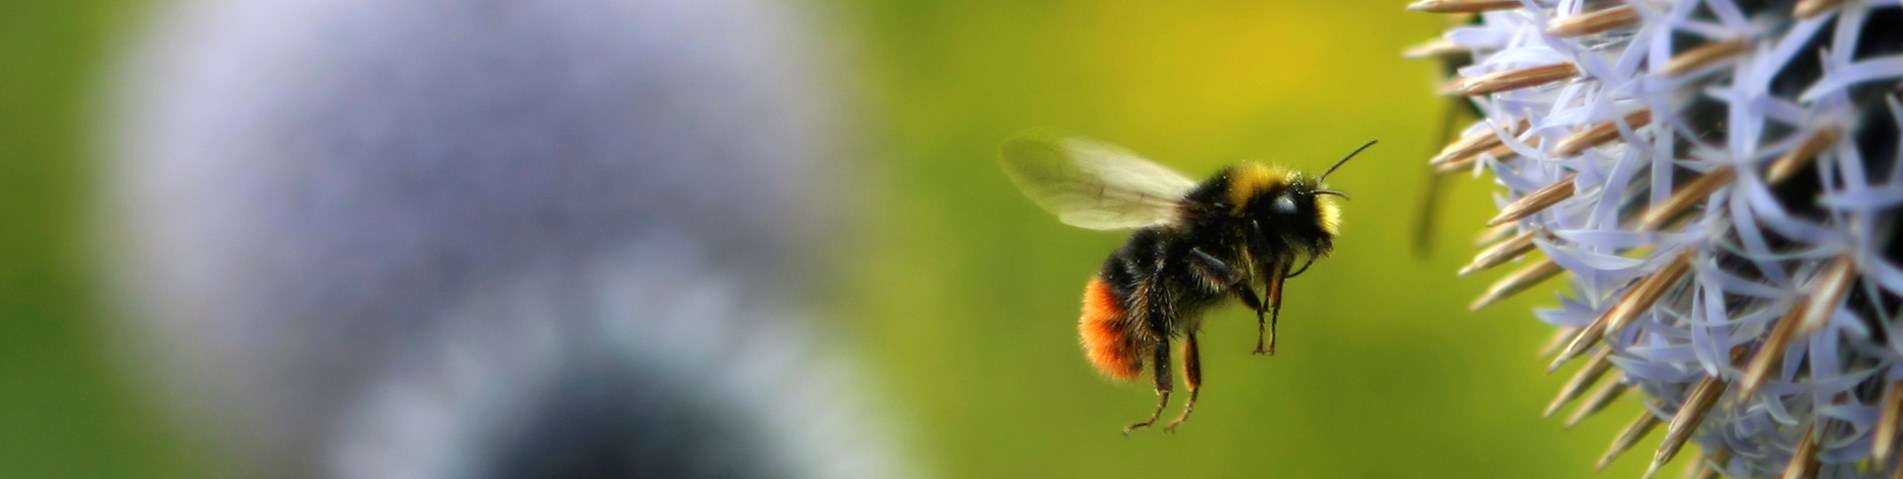 bee-flying-to-flower-iStock_000000745159_Medium.jpg